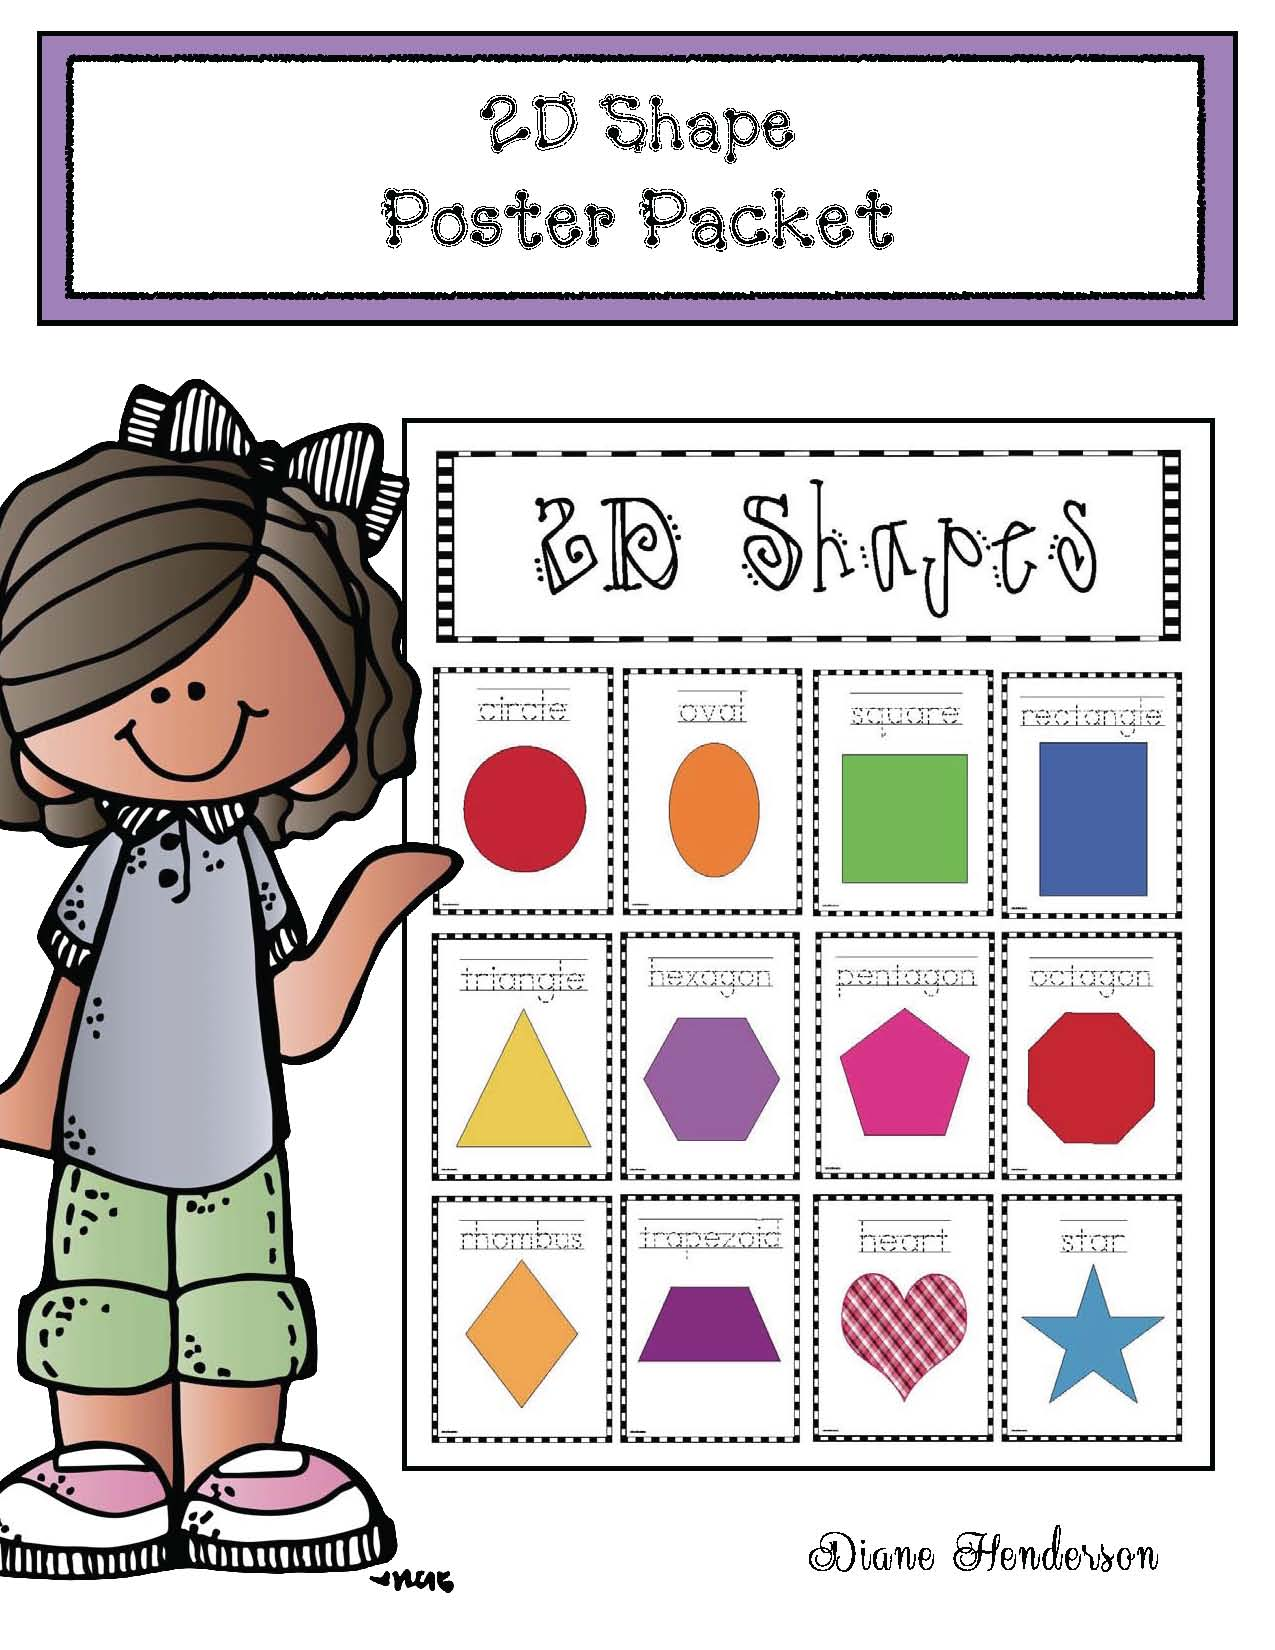 cov 2D shape poster packet